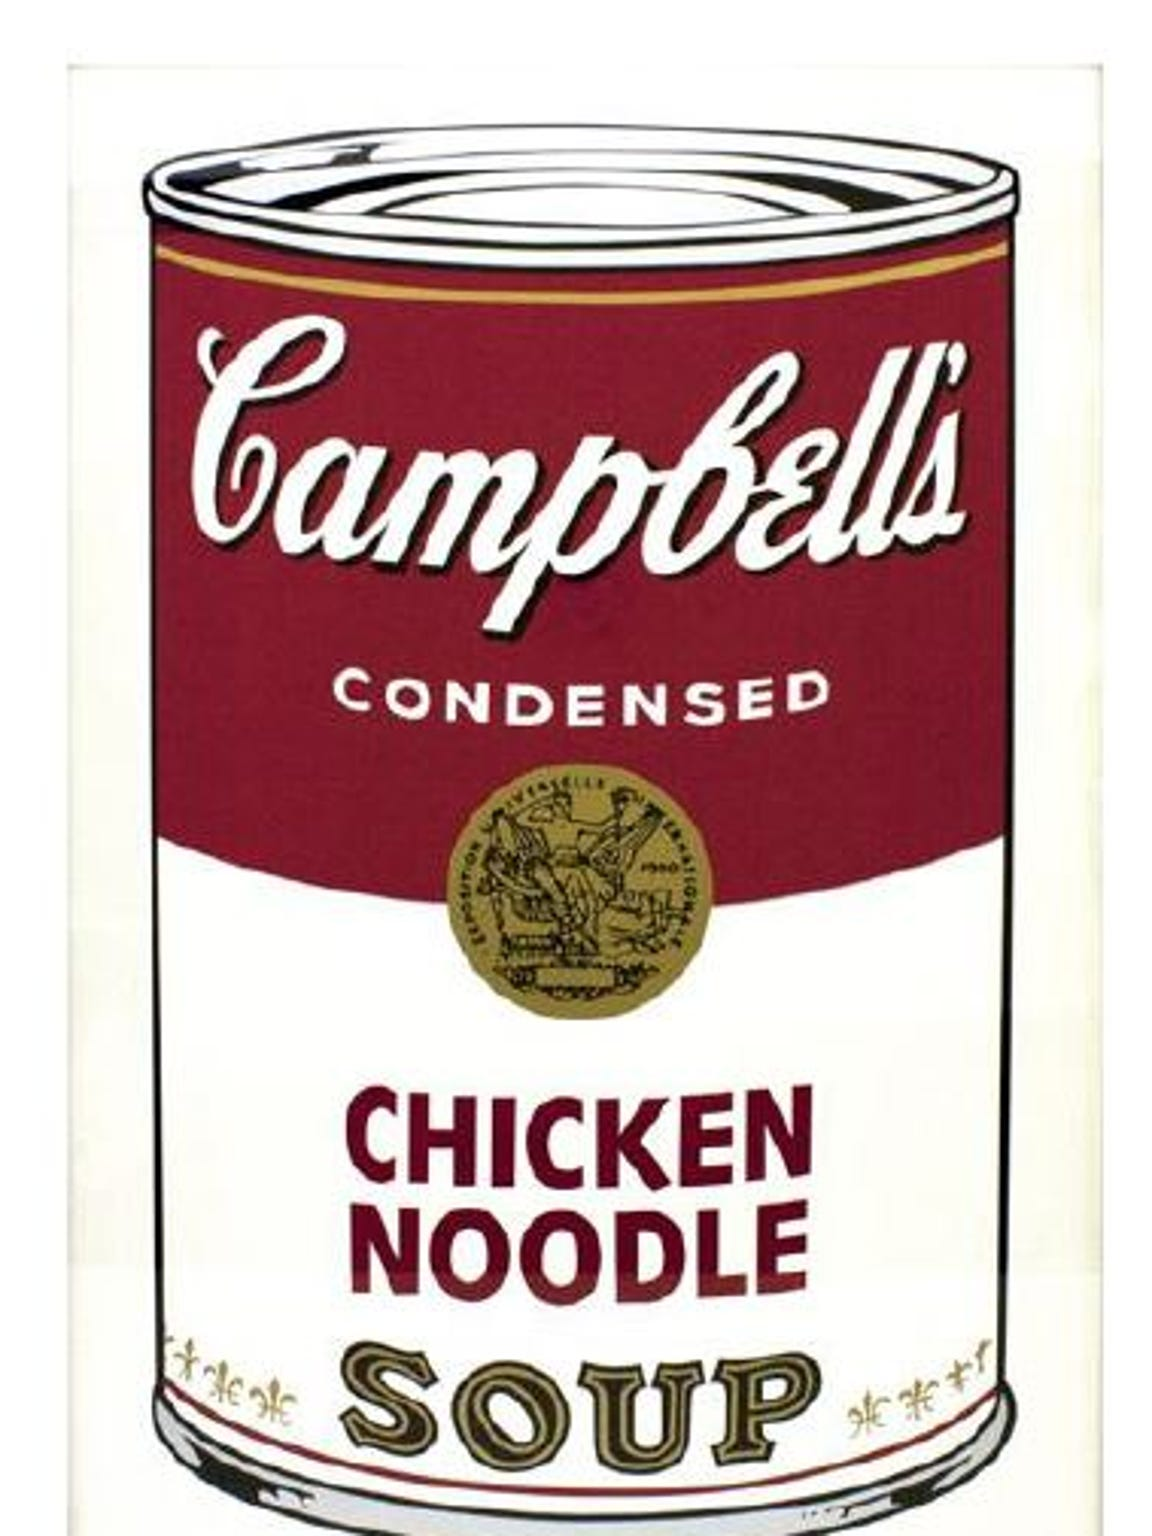 Campbell's Soup I (Chicken Noodle), one of the prints stolen from the Springfield Art Museum